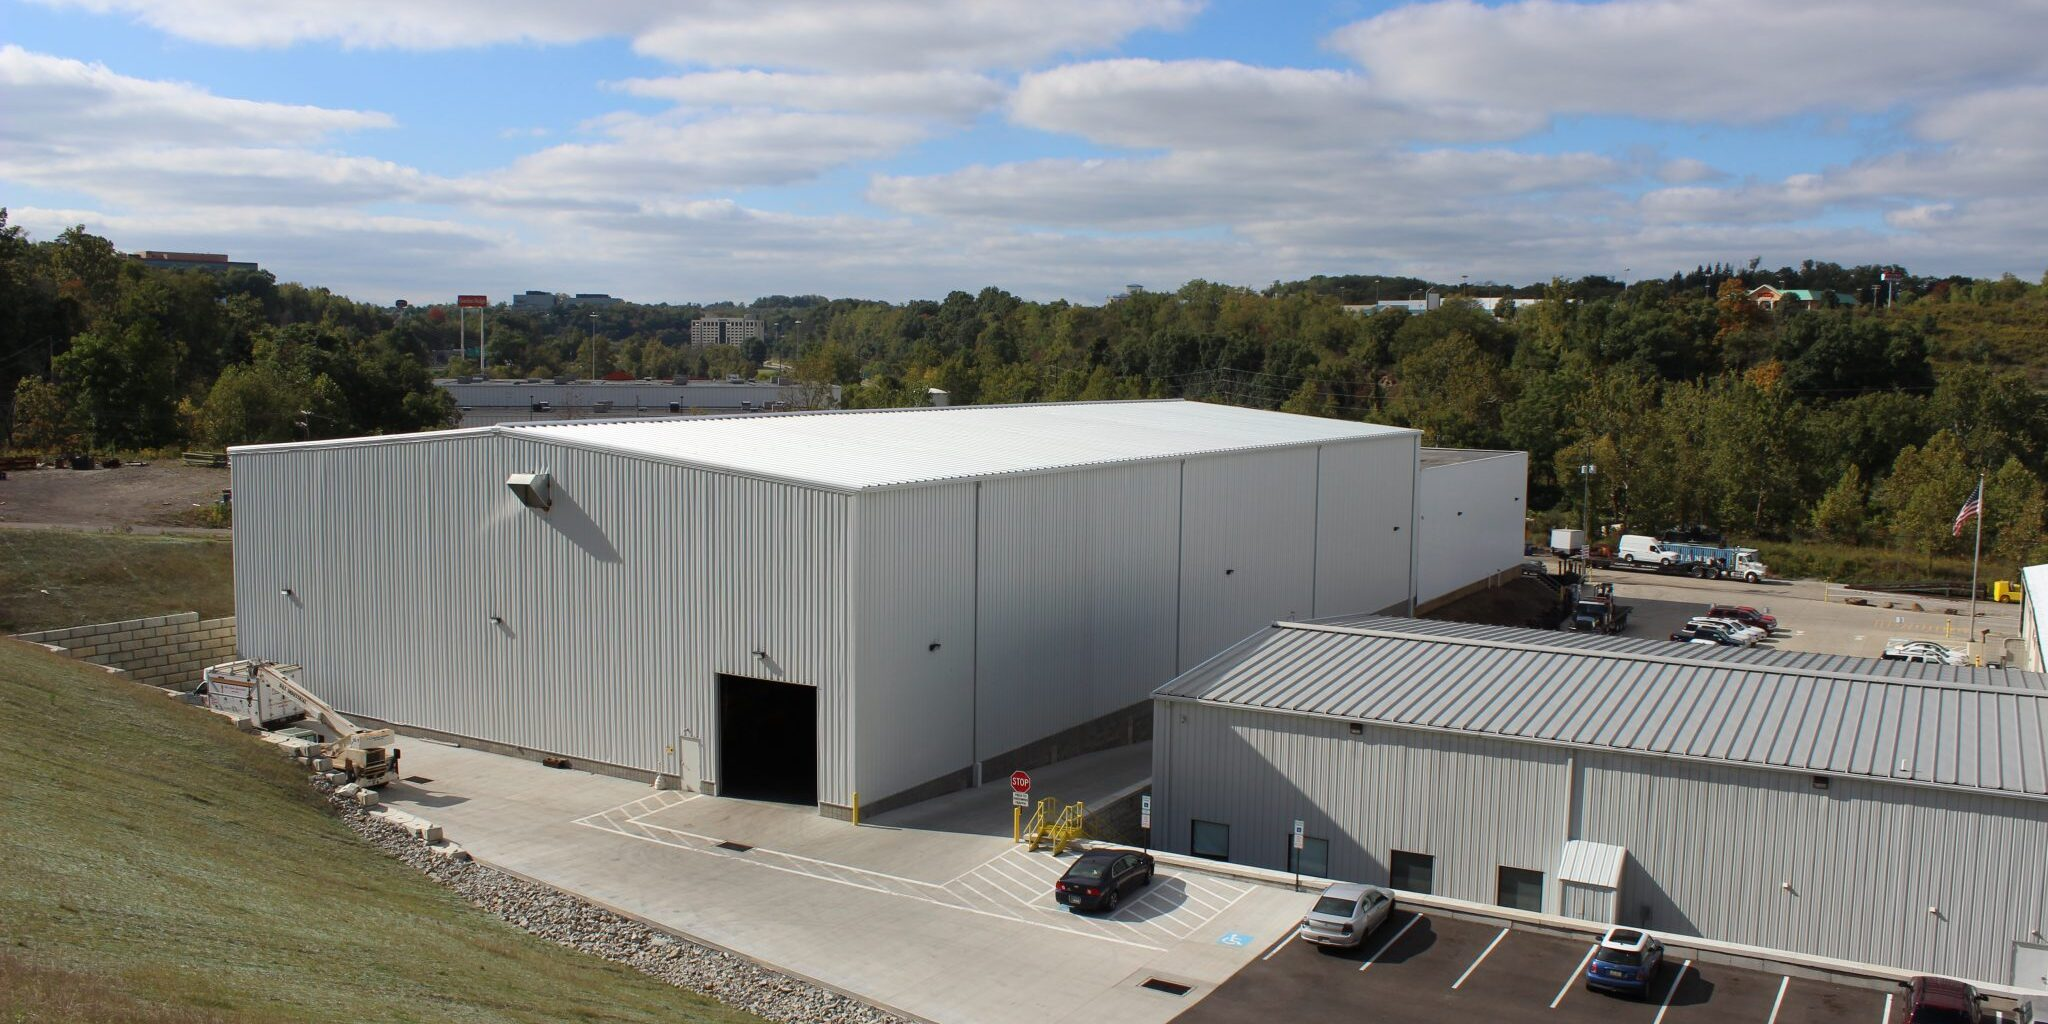 H&K Equipment in Coraopolis, PA